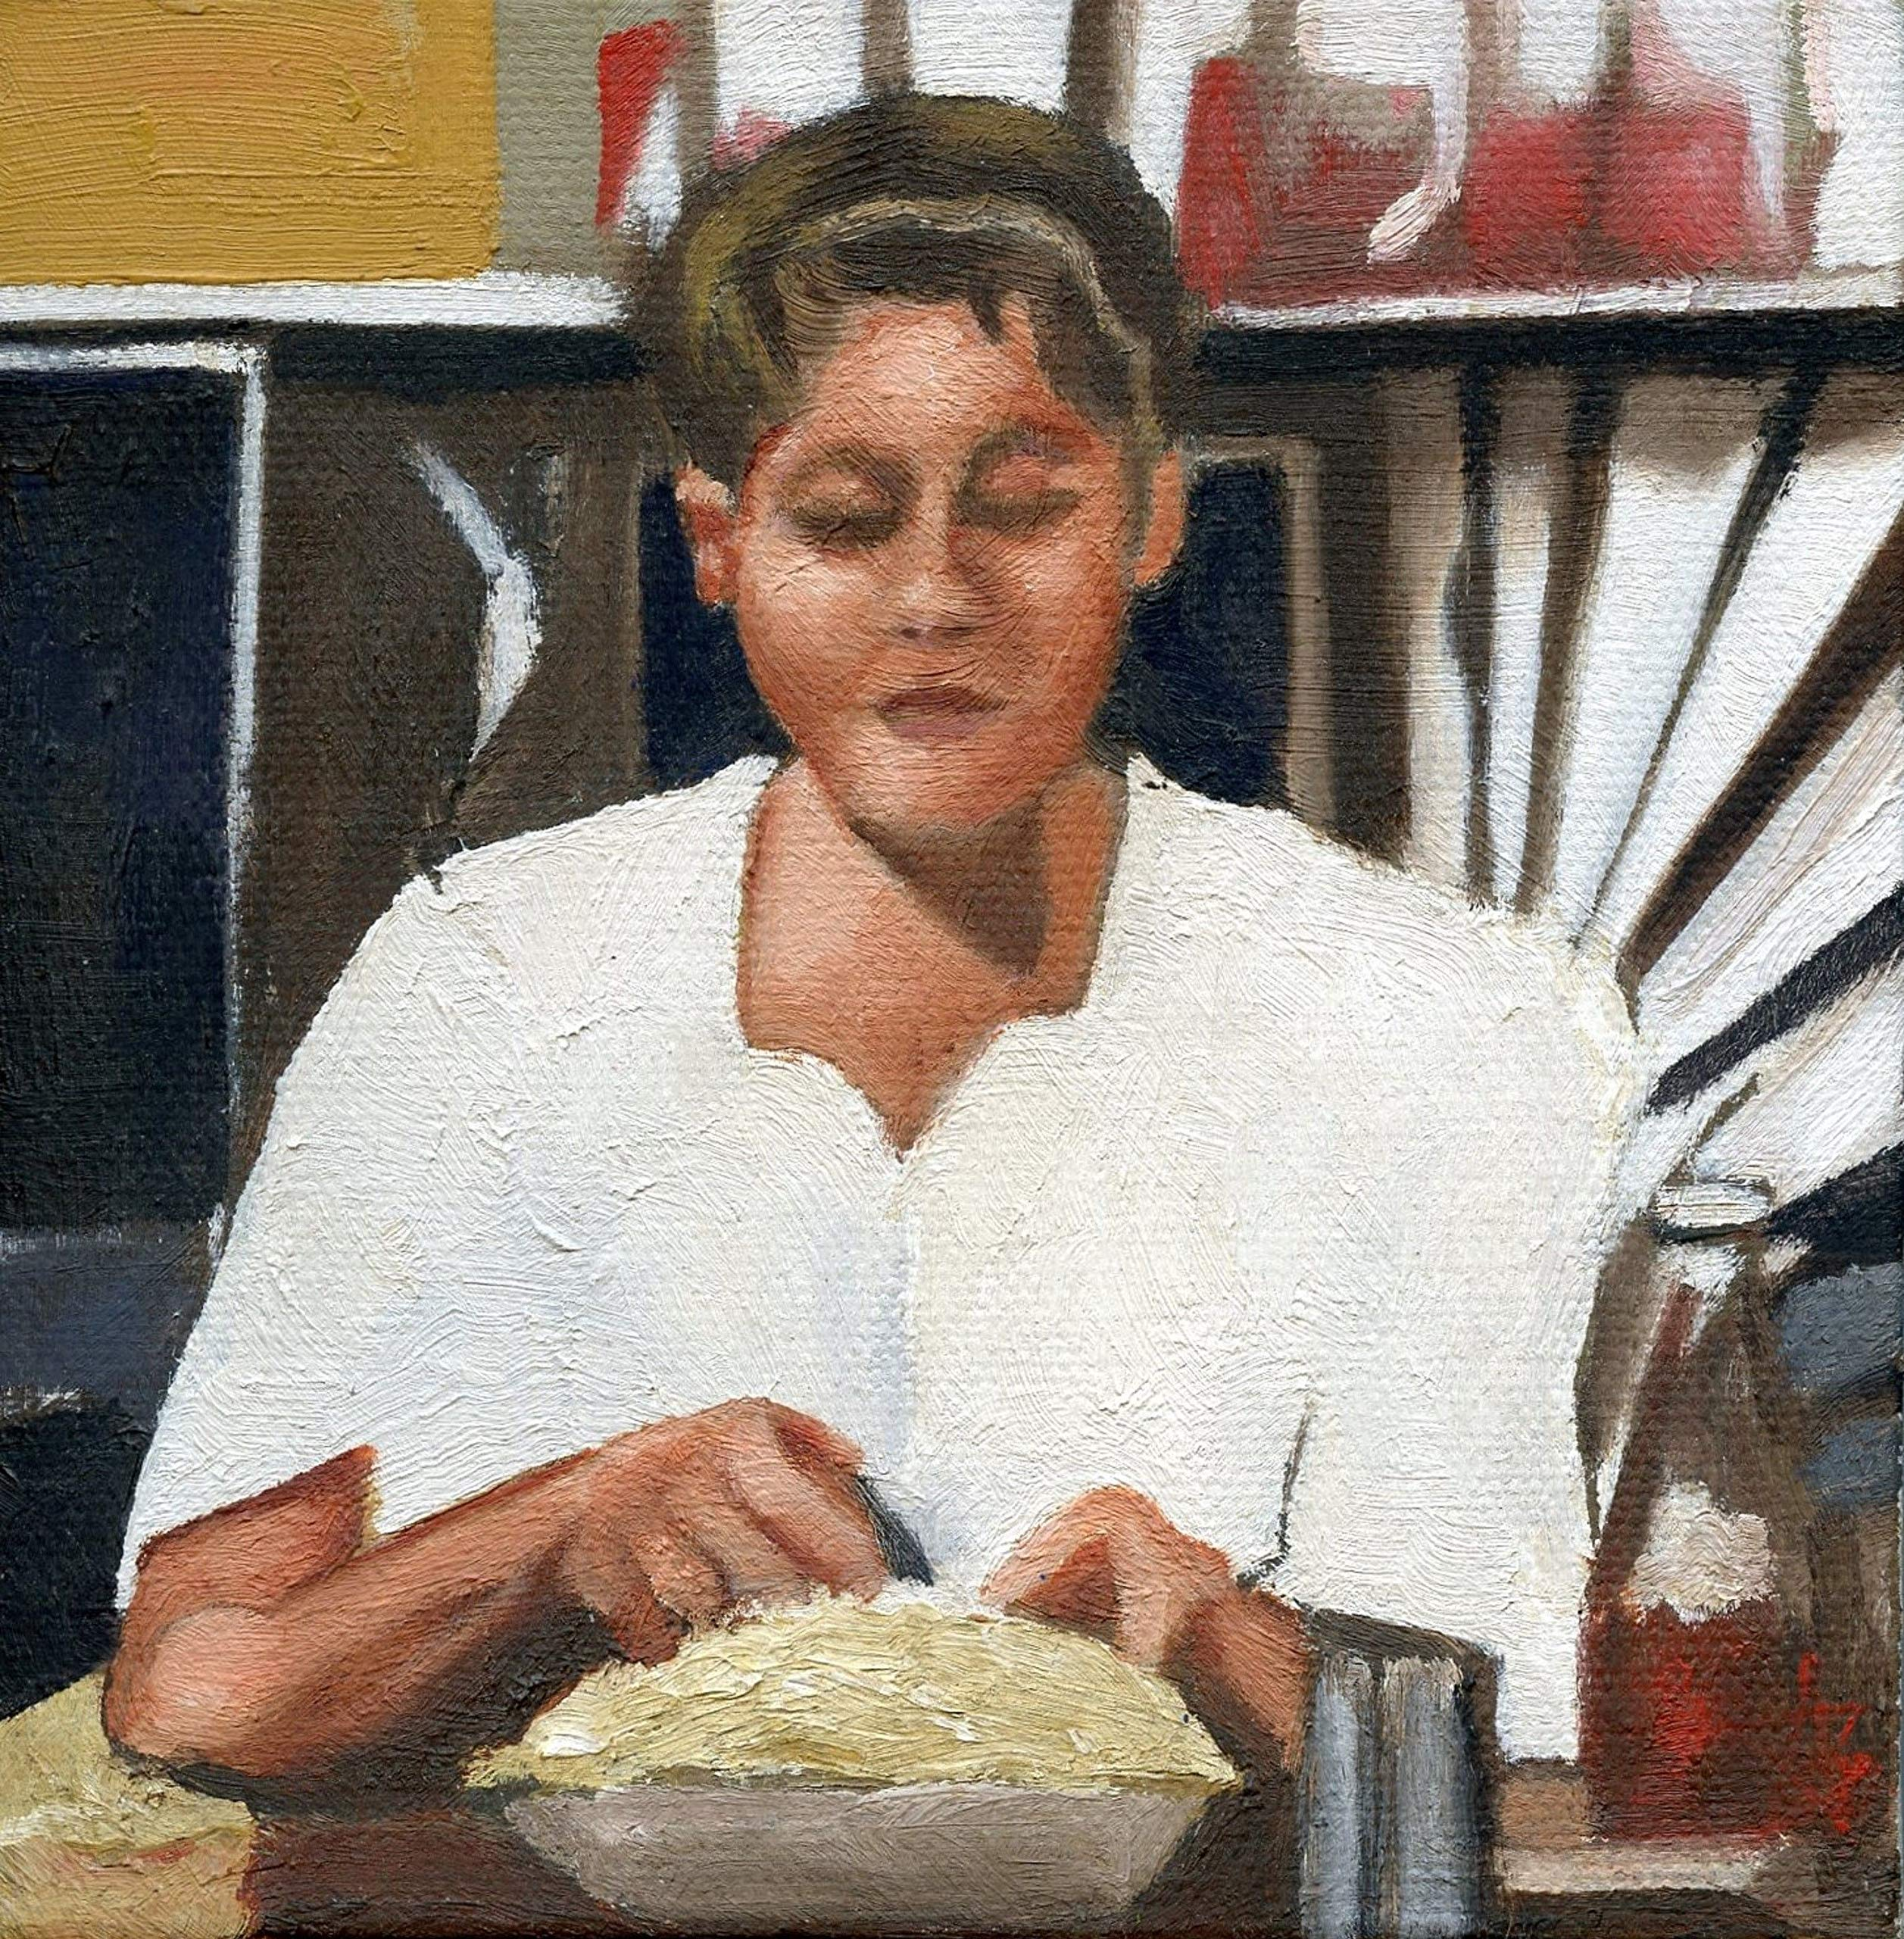 Waitress with Pie, 1